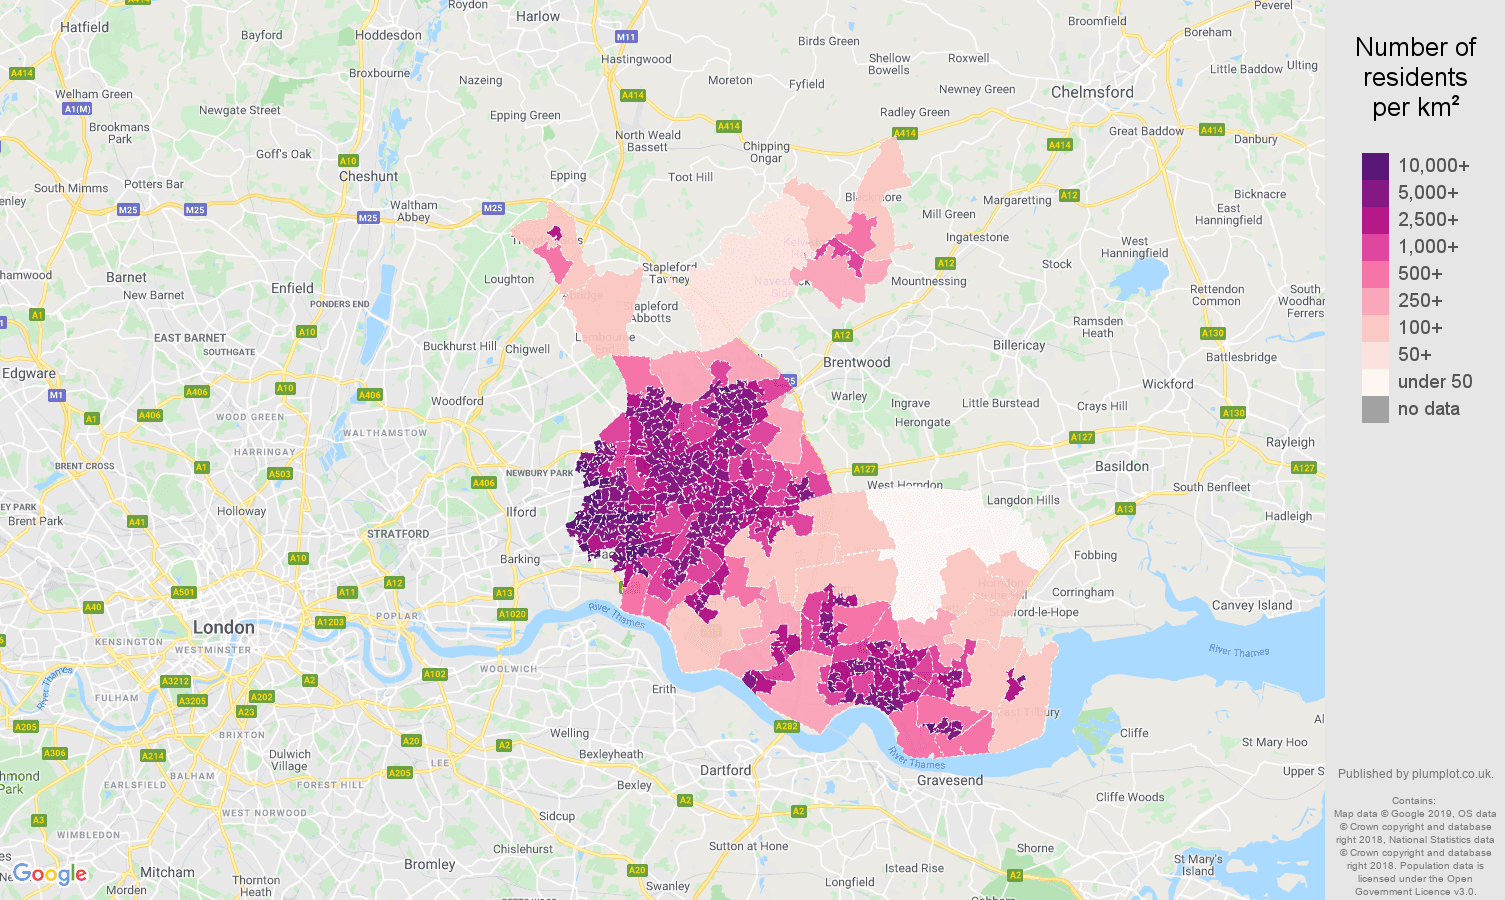 Romford population density map